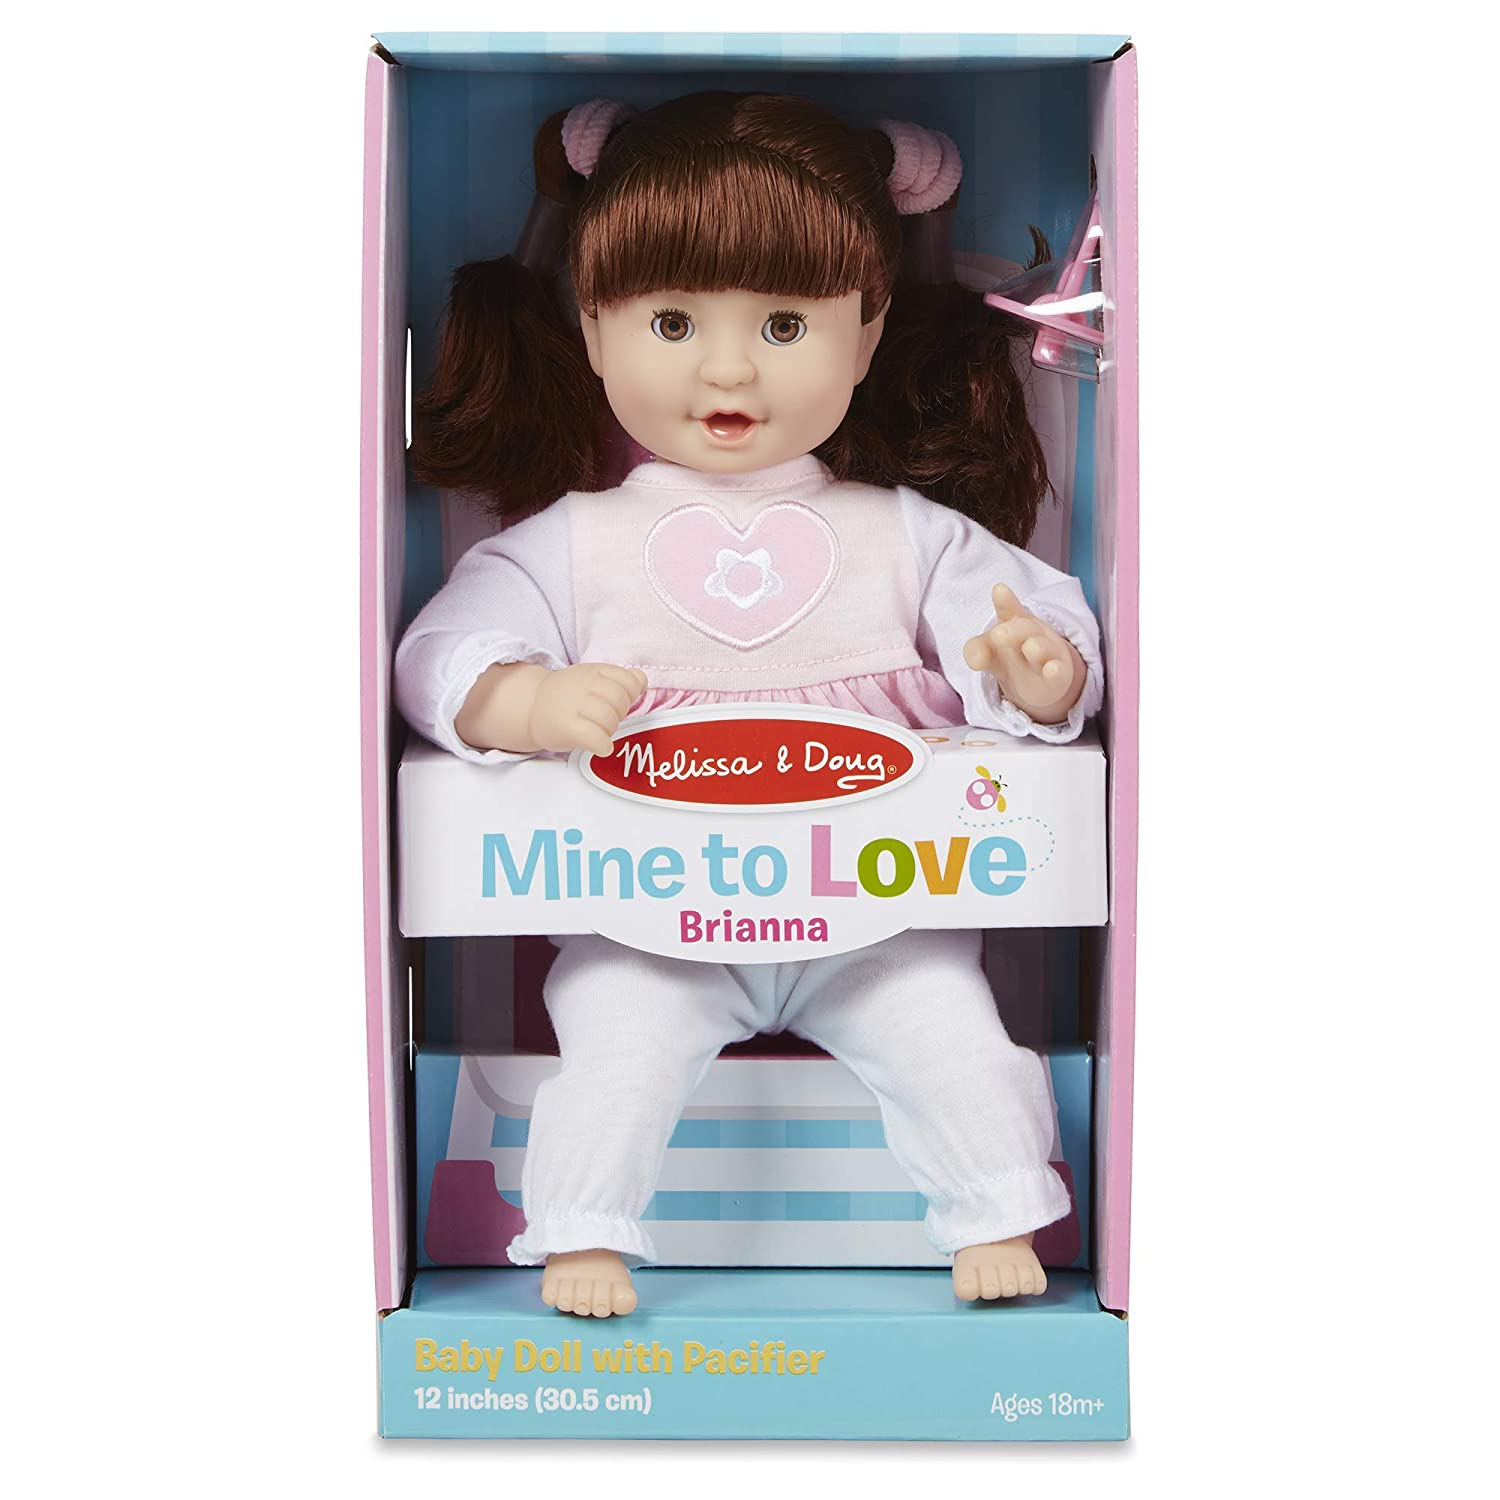 Amazon.com: Melissa & Doug Mine to Love Brianna, muñeca de ...